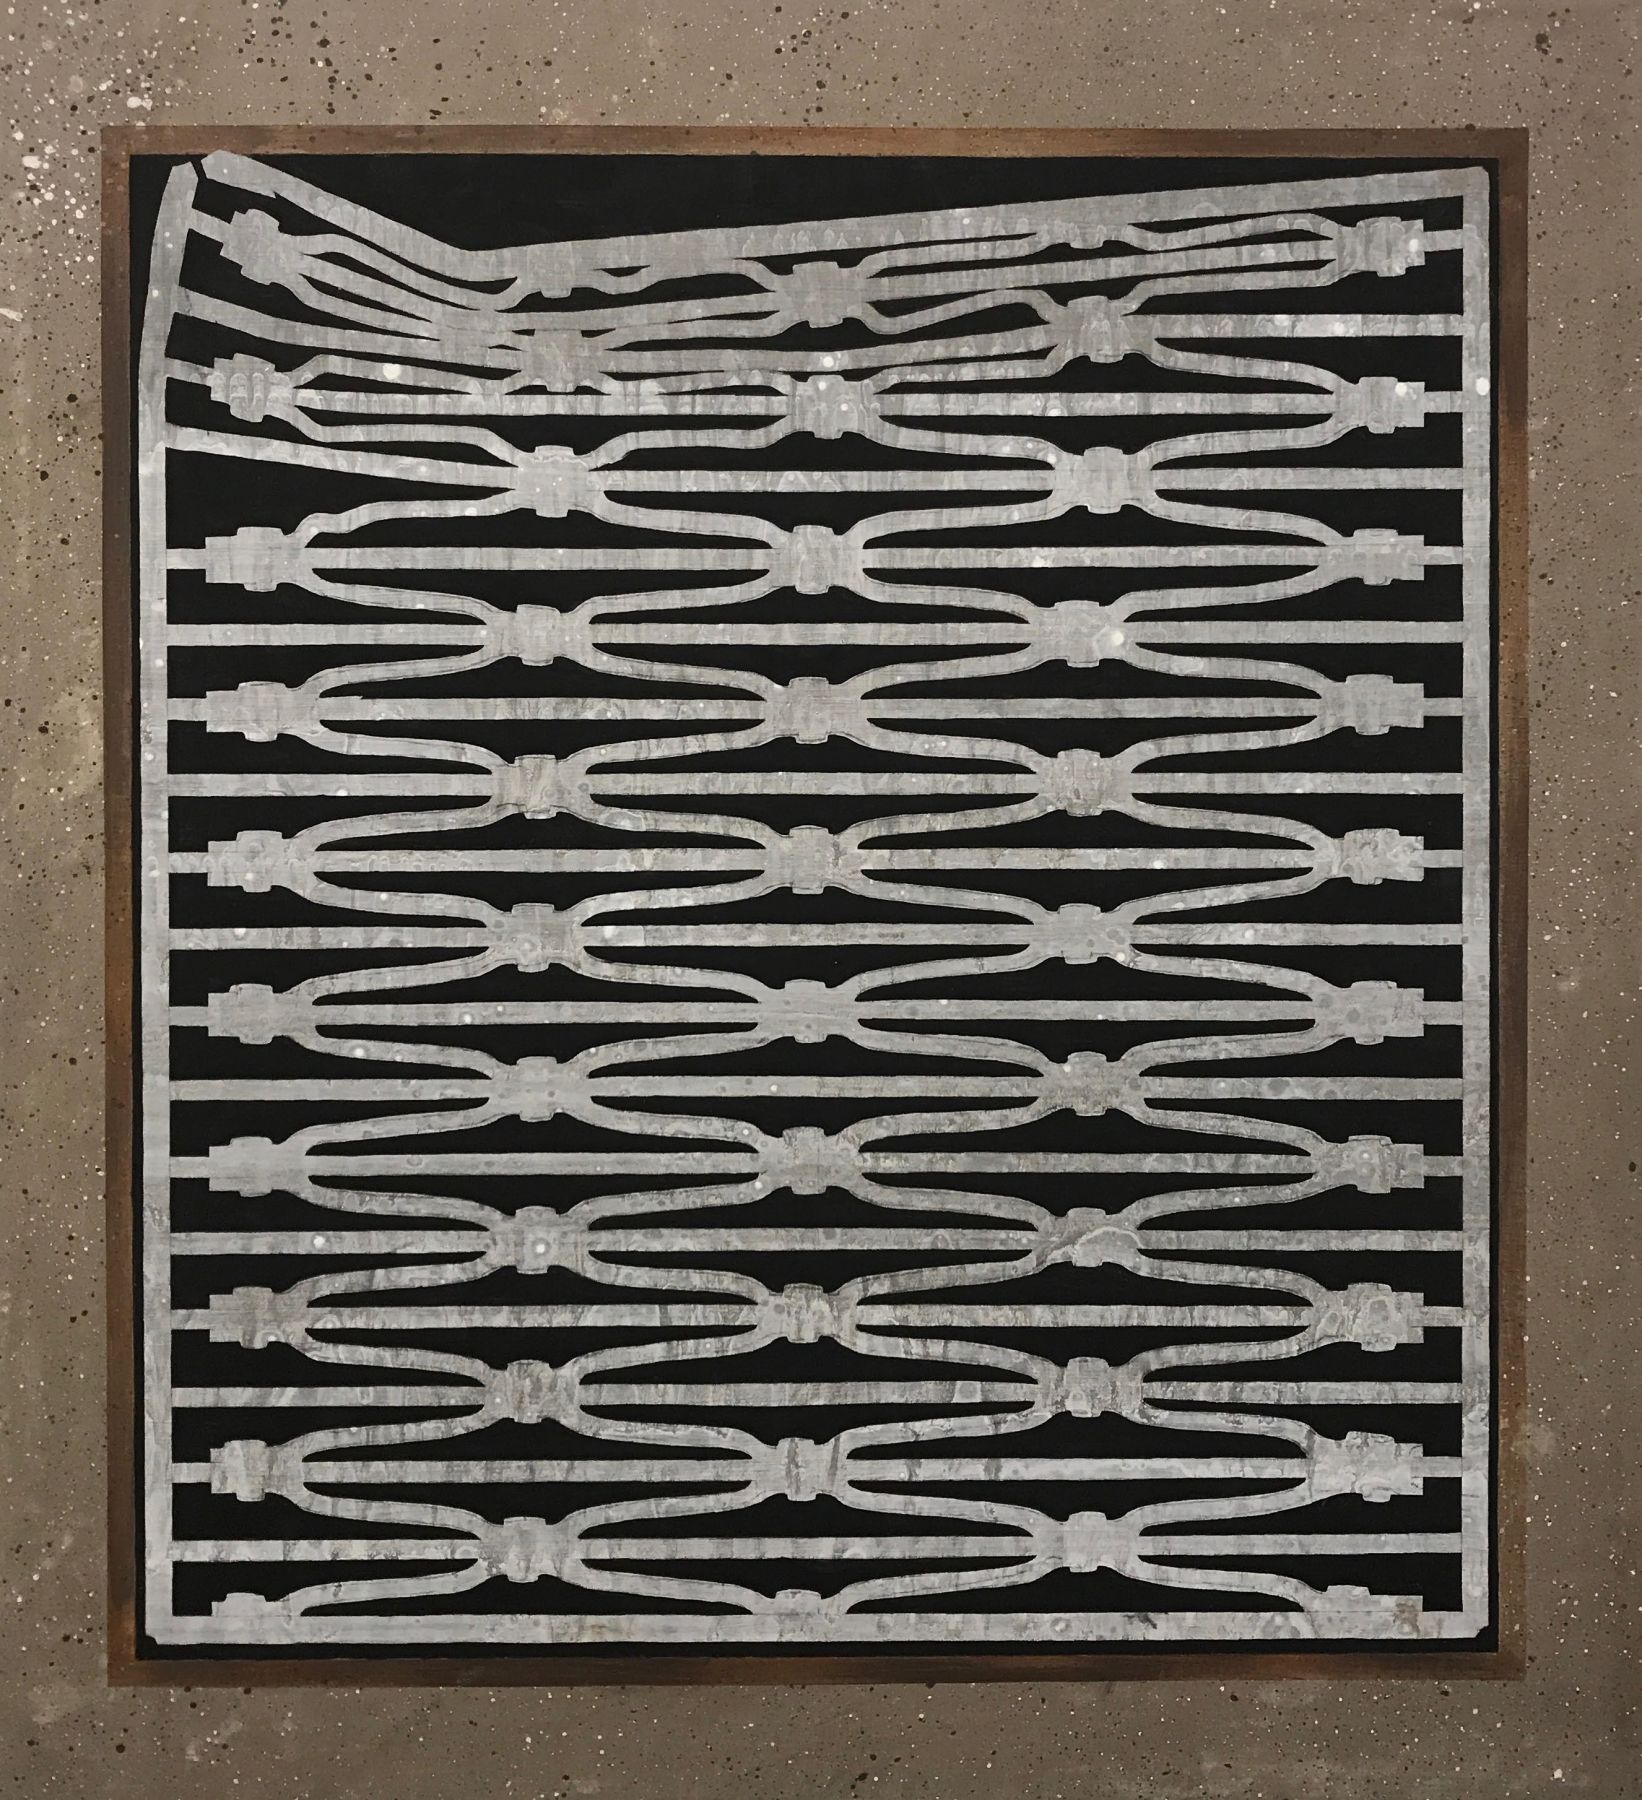 Hannah Cole  Grate In Brown Cement, 2015  Acrylic on canvas  22h x 24w in 55.88h x 60.96w cm  HC_017 Photorealistic painting